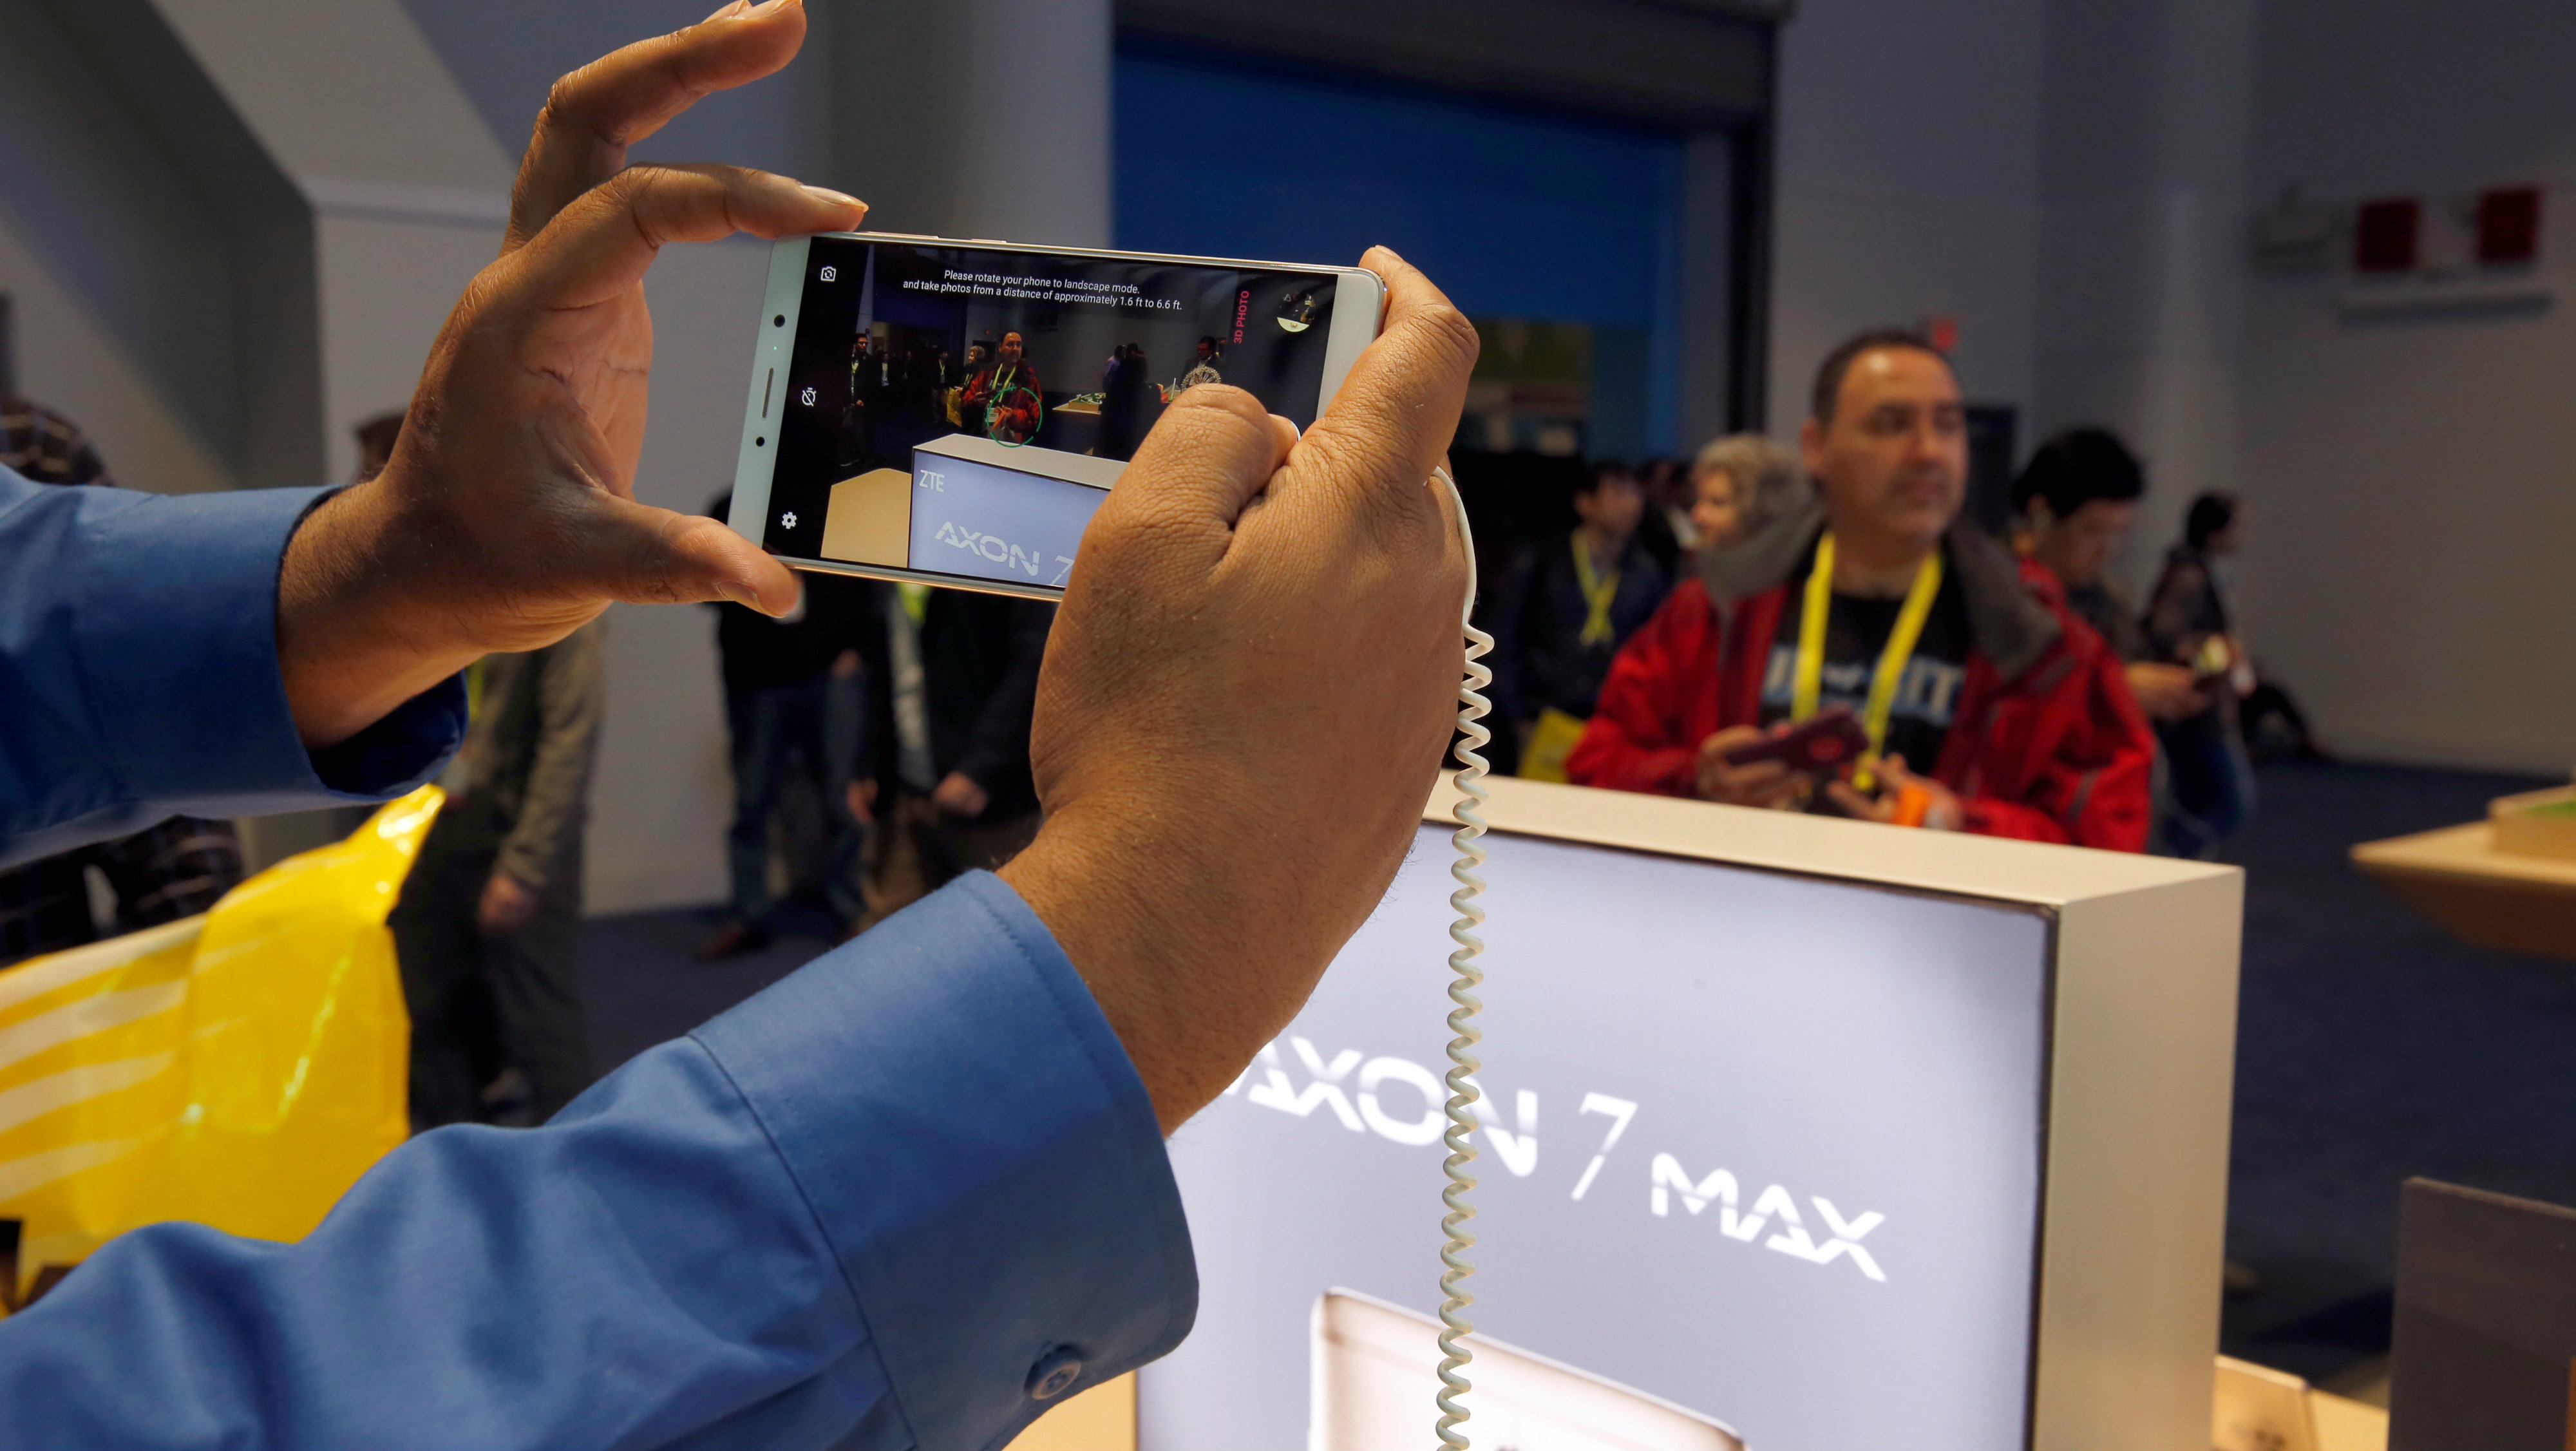 A man takes a photo with an Axon 7 Max smartphone with 3D camera at the ZTE booth during the 2017 CES in Las Vegas, Nevada January 6, 2017